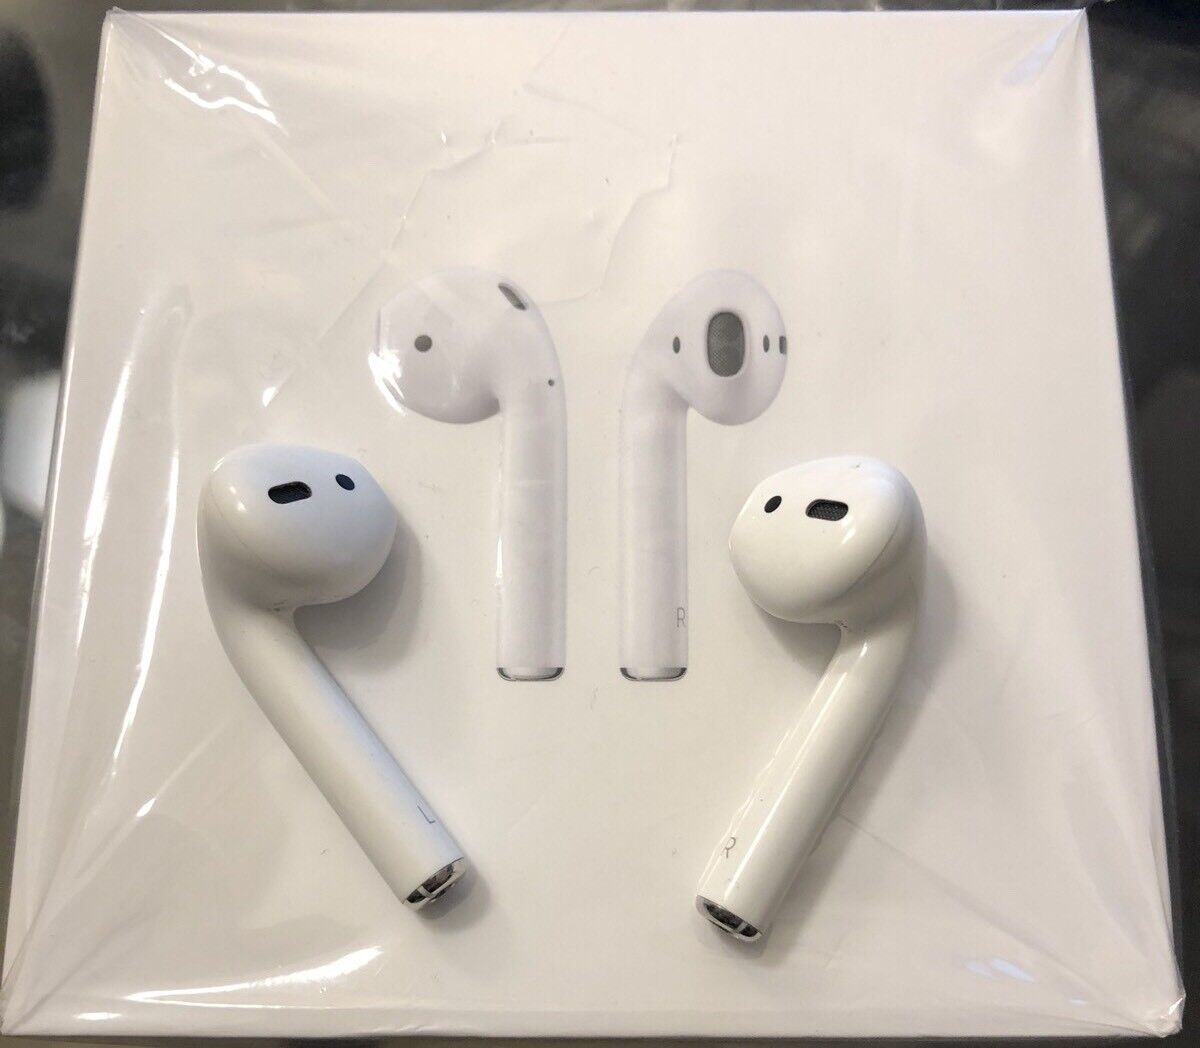 NEW 2nd Gen APPLE AirPods LEFT & RIGHT EAR BUDS ONLY from AP